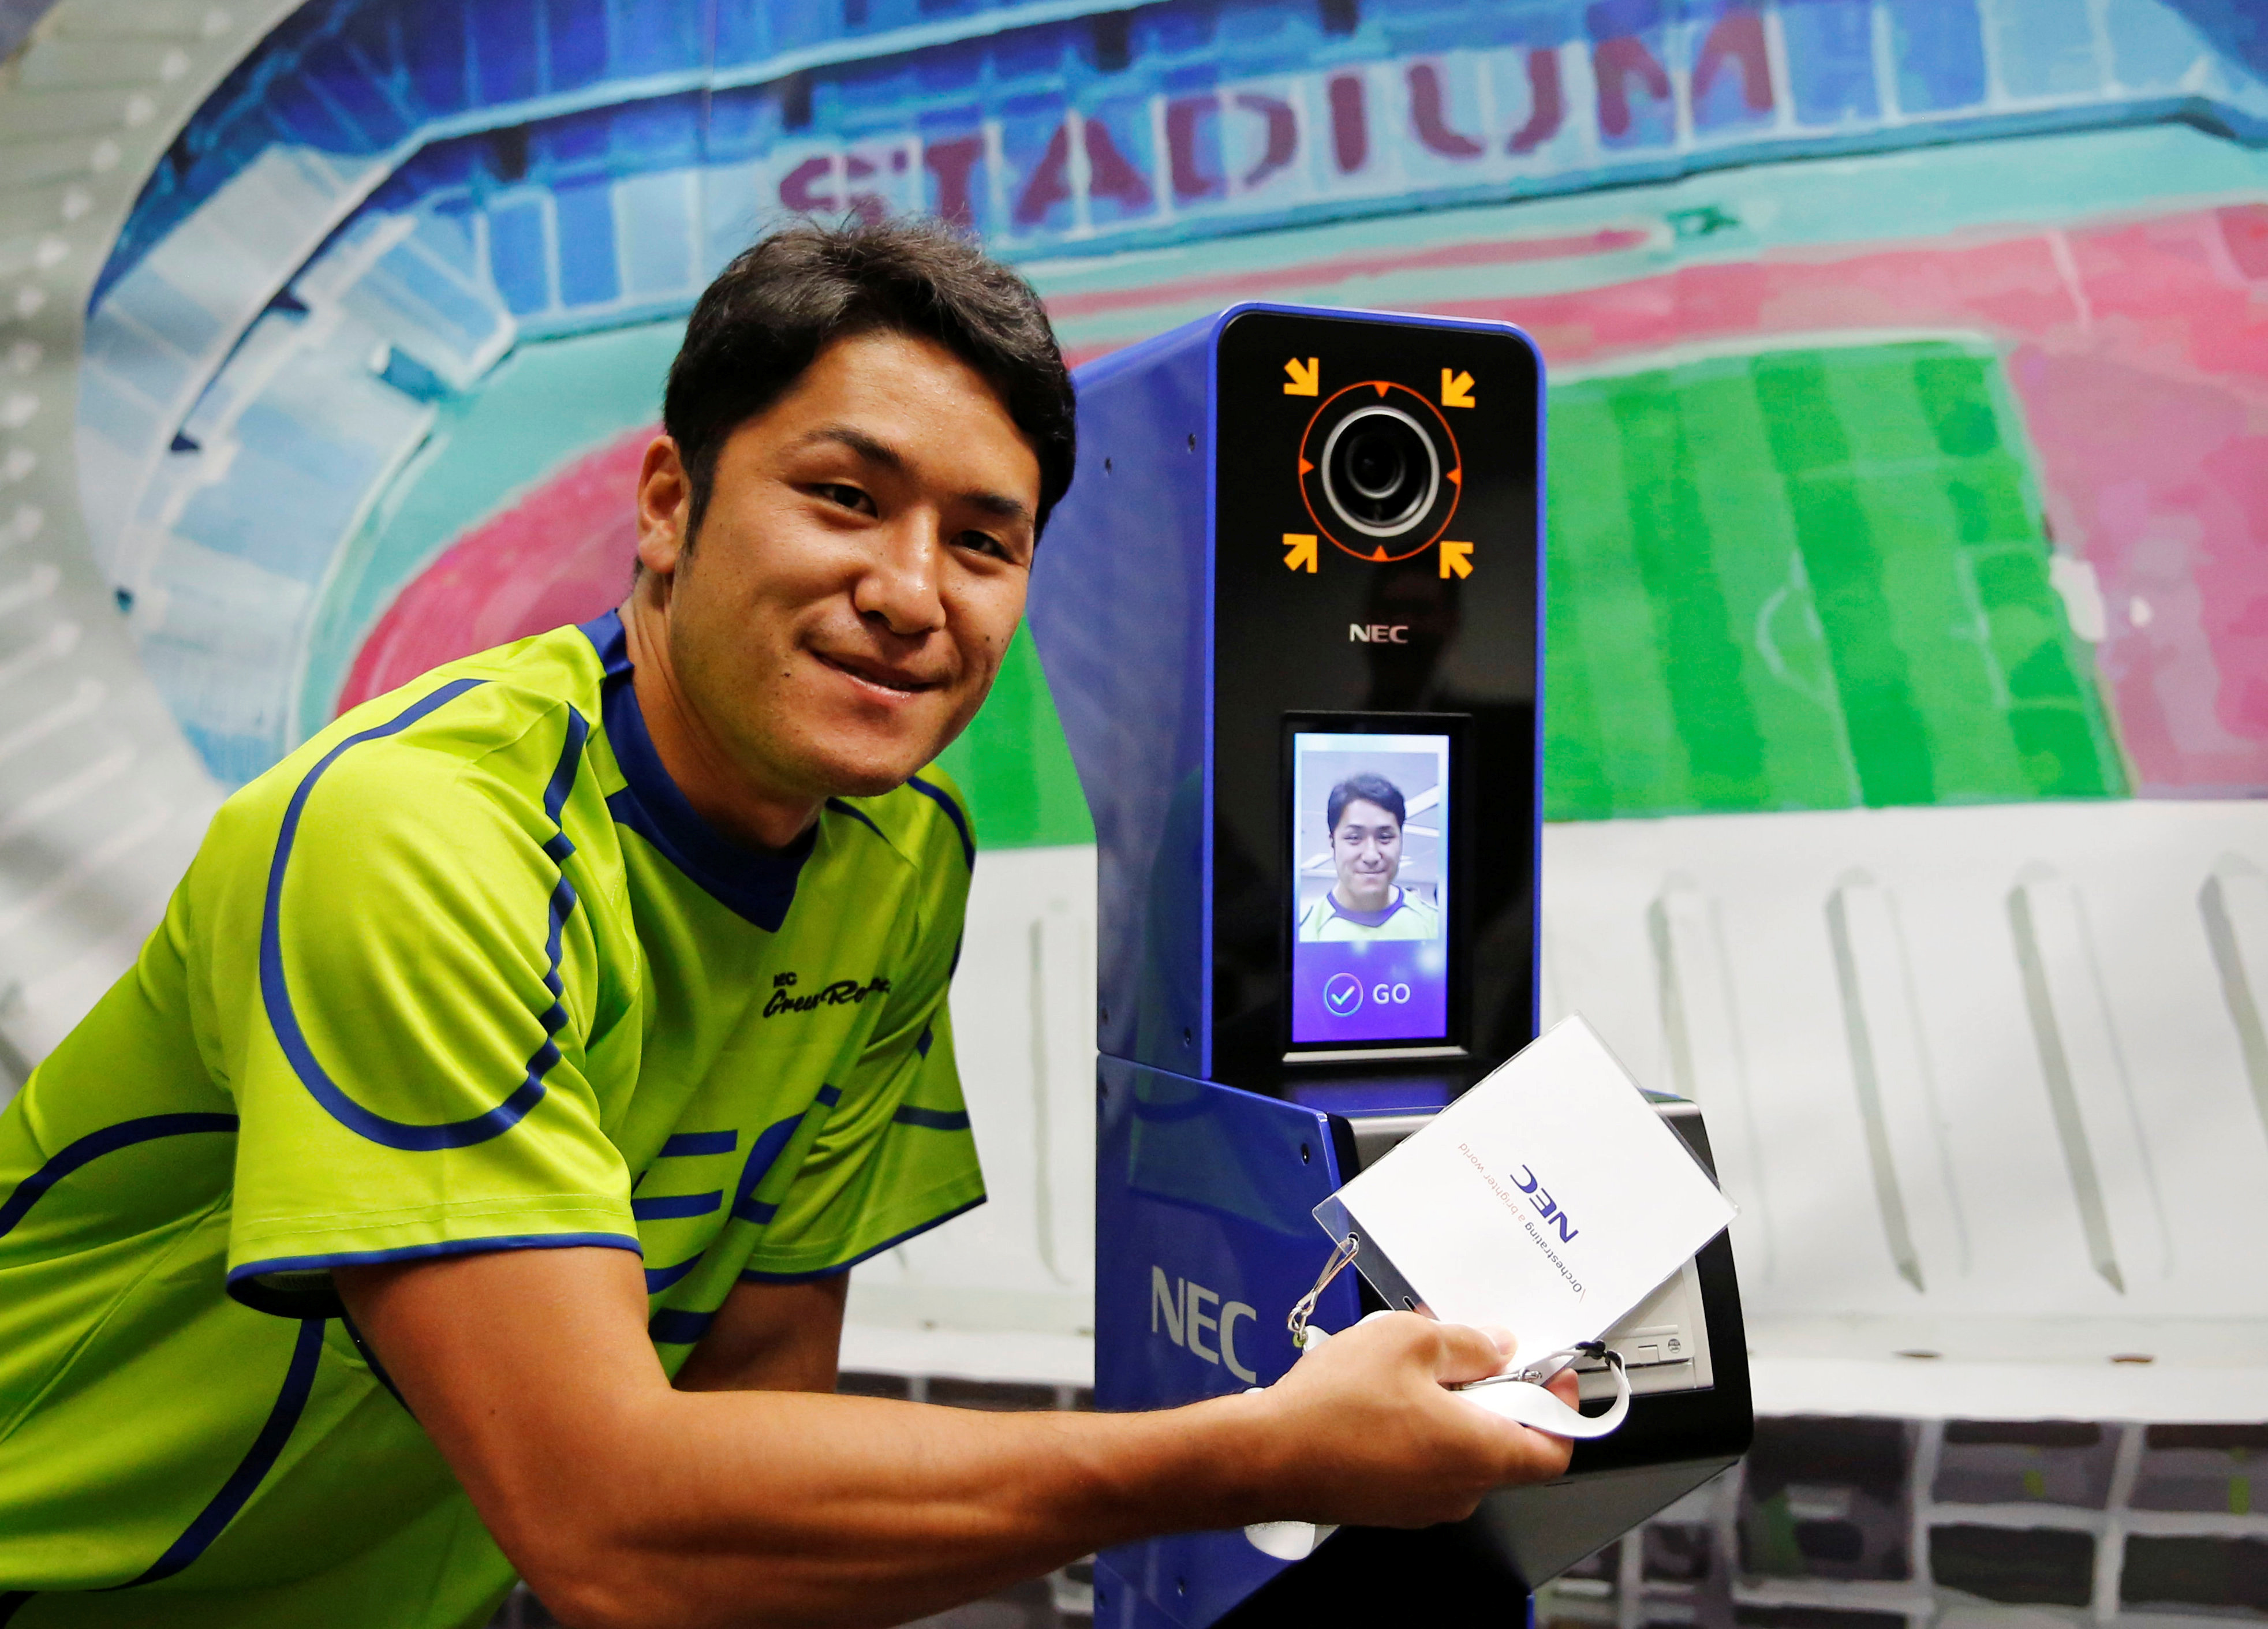 NEC Green Rockets' rugby player Teruya Goto poses with the face recognition system for Tokyo 2020 Olympics and Paralympics, which is developed by NEC corp, during its demonstration in Tokyo